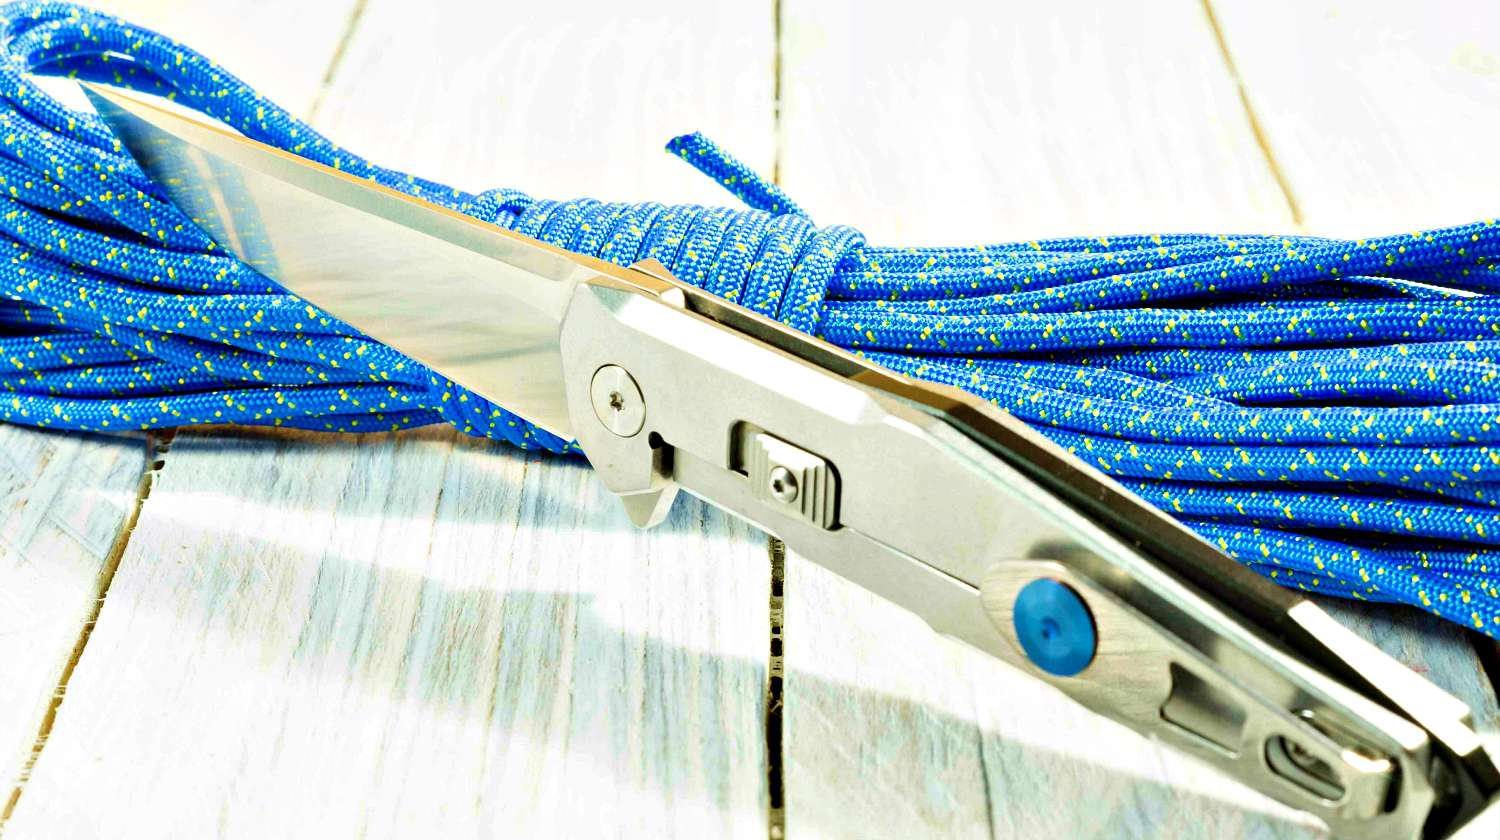 Steel knife with a paracord cord   Homemade Paracord Knife Grip   DIY Paracord Projects   Featured